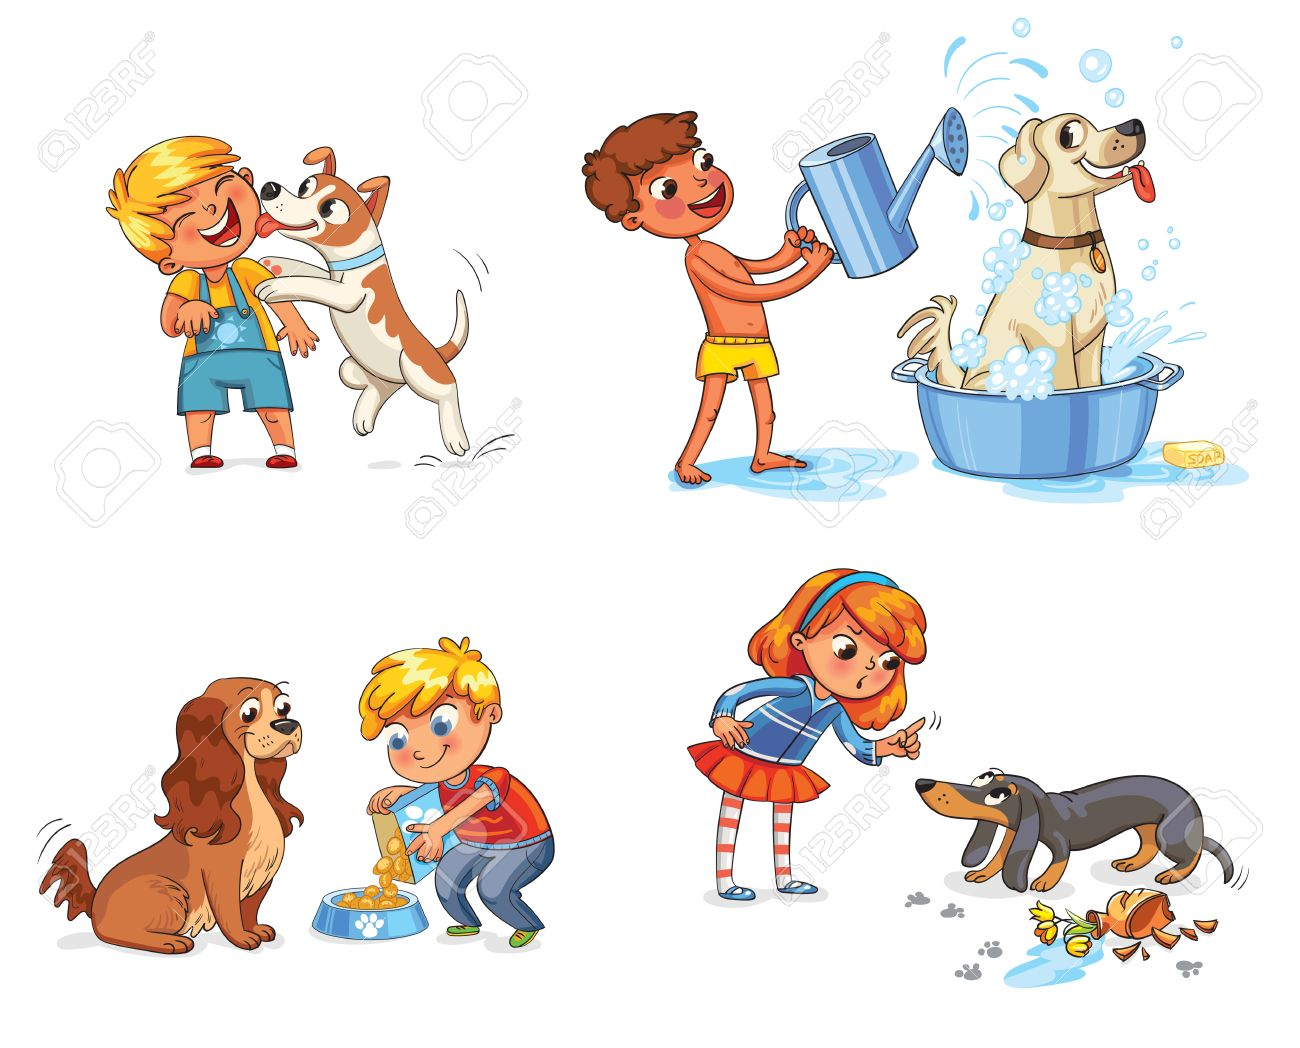 Happy boy with a dog licking her face. Labrador taking a bubble bath. Boy filling pet bowl with dry food for dog. Cocker Spaniel waiting for food. Girl scolding pet for disobedience and broken things - 69019200